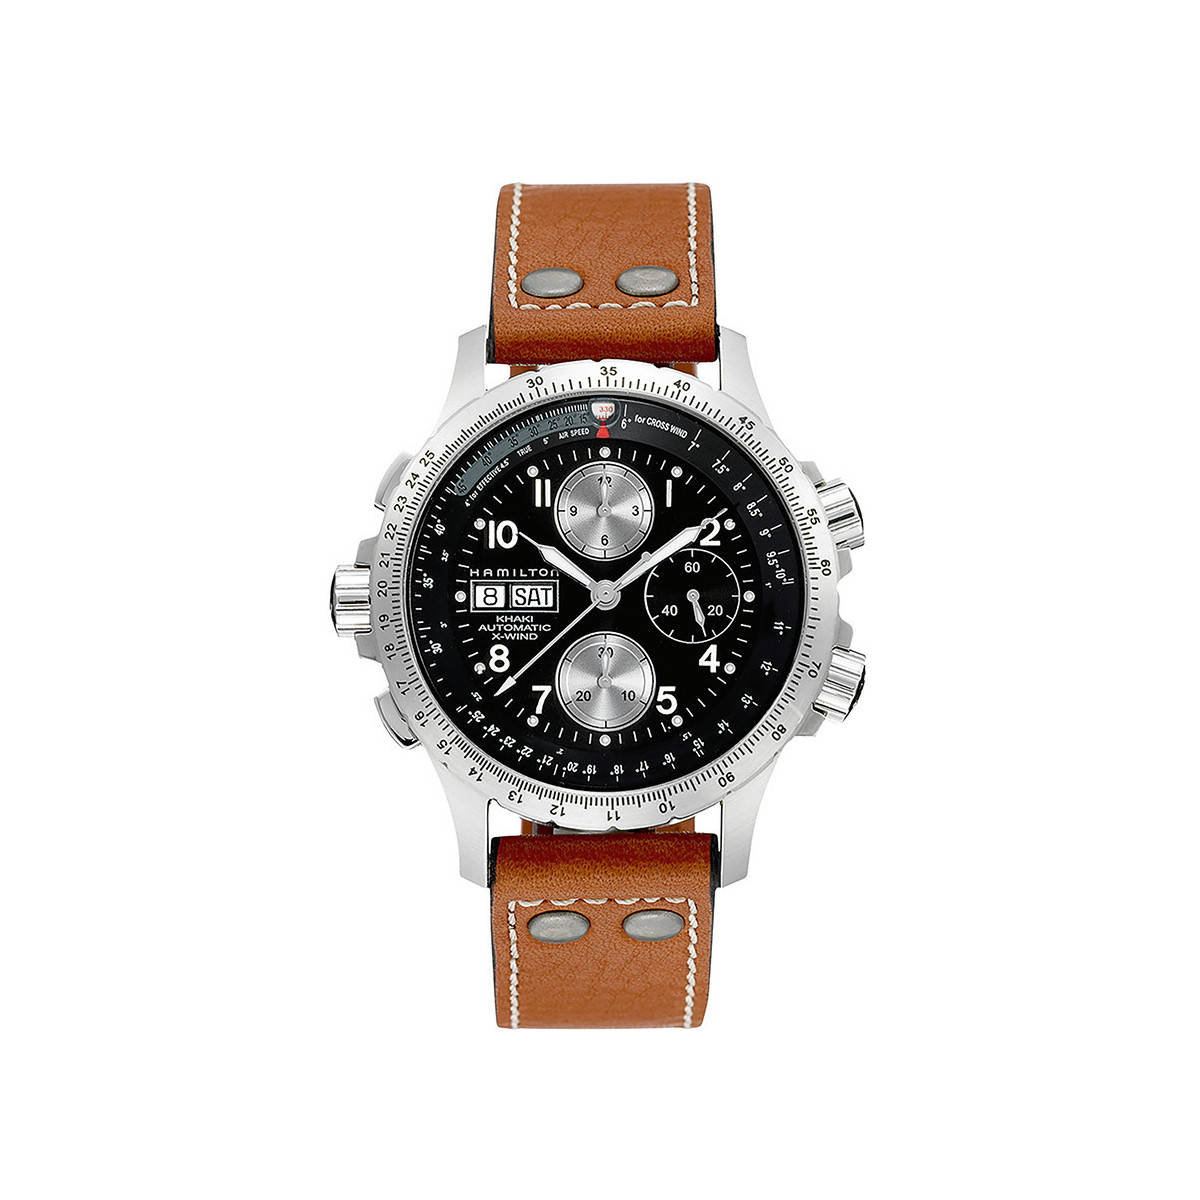 HAMILTON KHAKI AVIATION  X-WIND